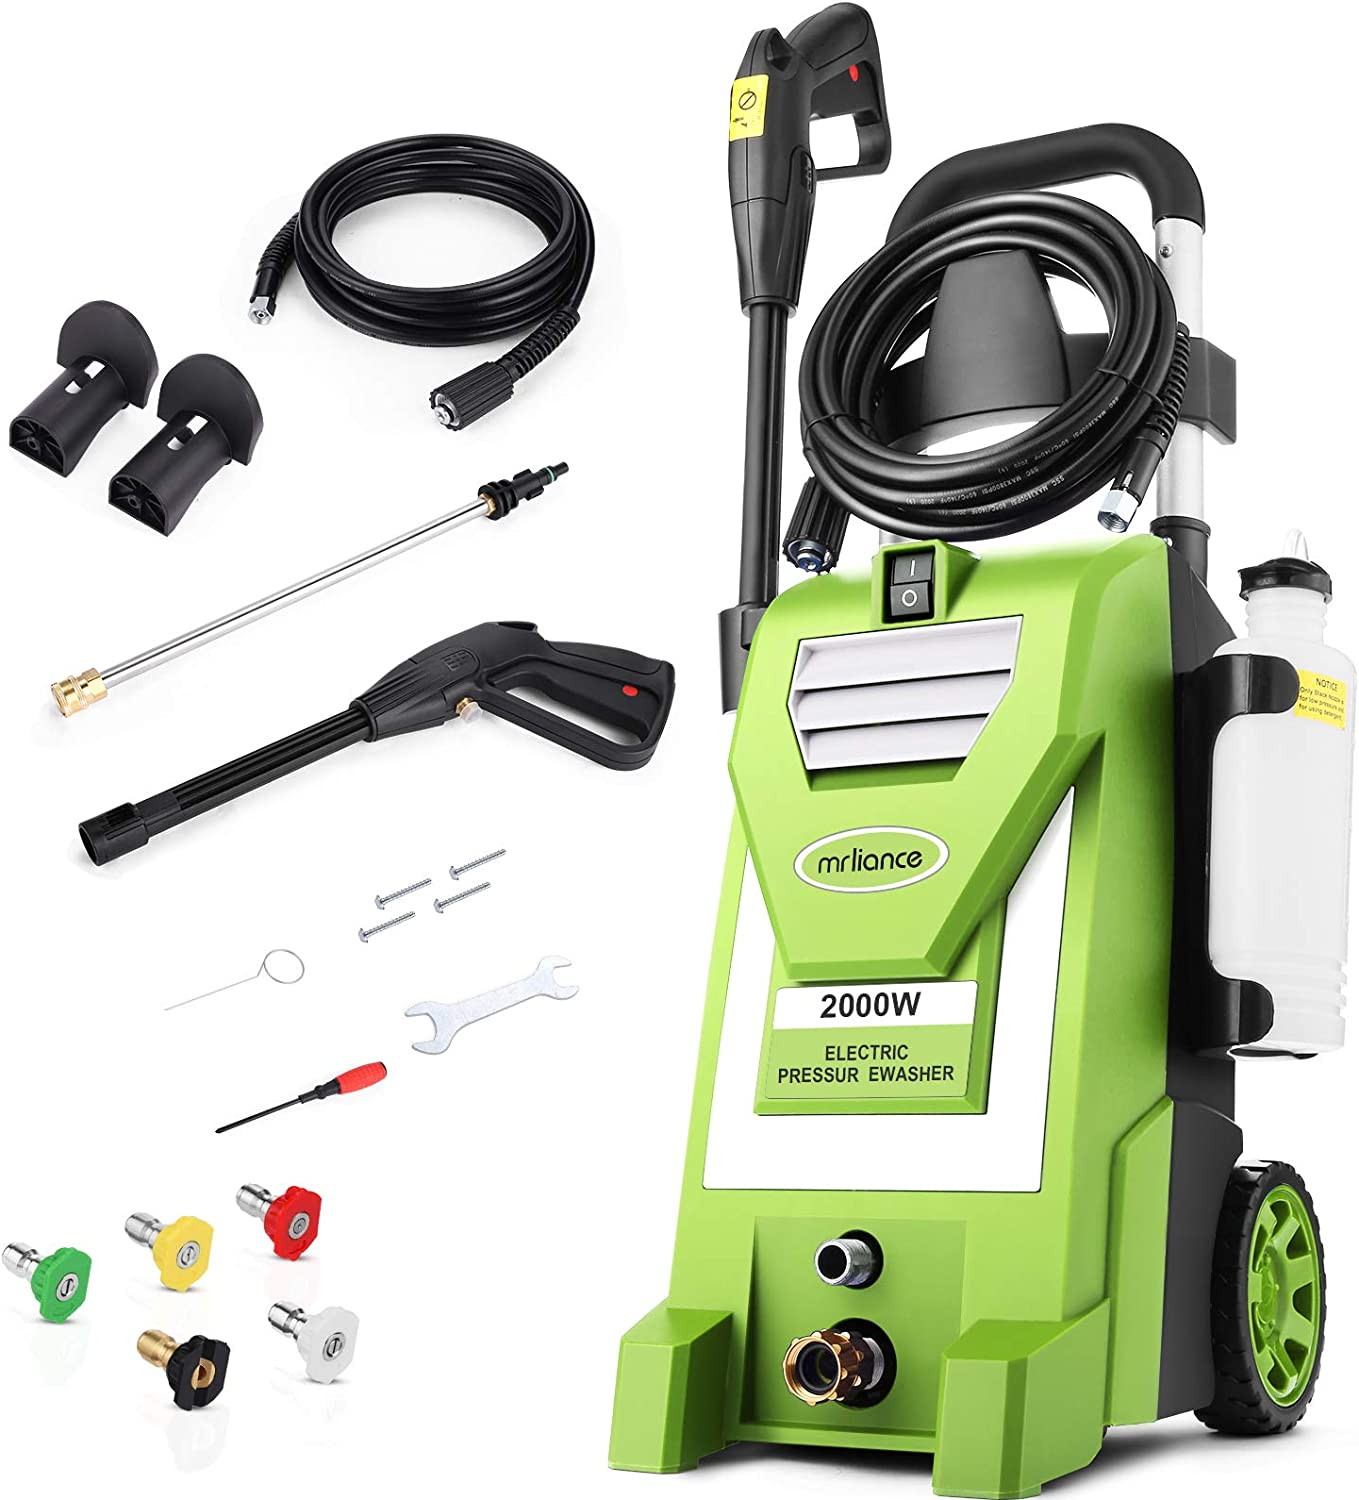 Mrliance 3800PSI Electric Pressure Washer ,3.0GPM Electric Power Washer with 5 Nozzles, 2000W High Pressure Washer Perfect for Cleaning Cars Houses Driveways Fences Patios Garden (Green)